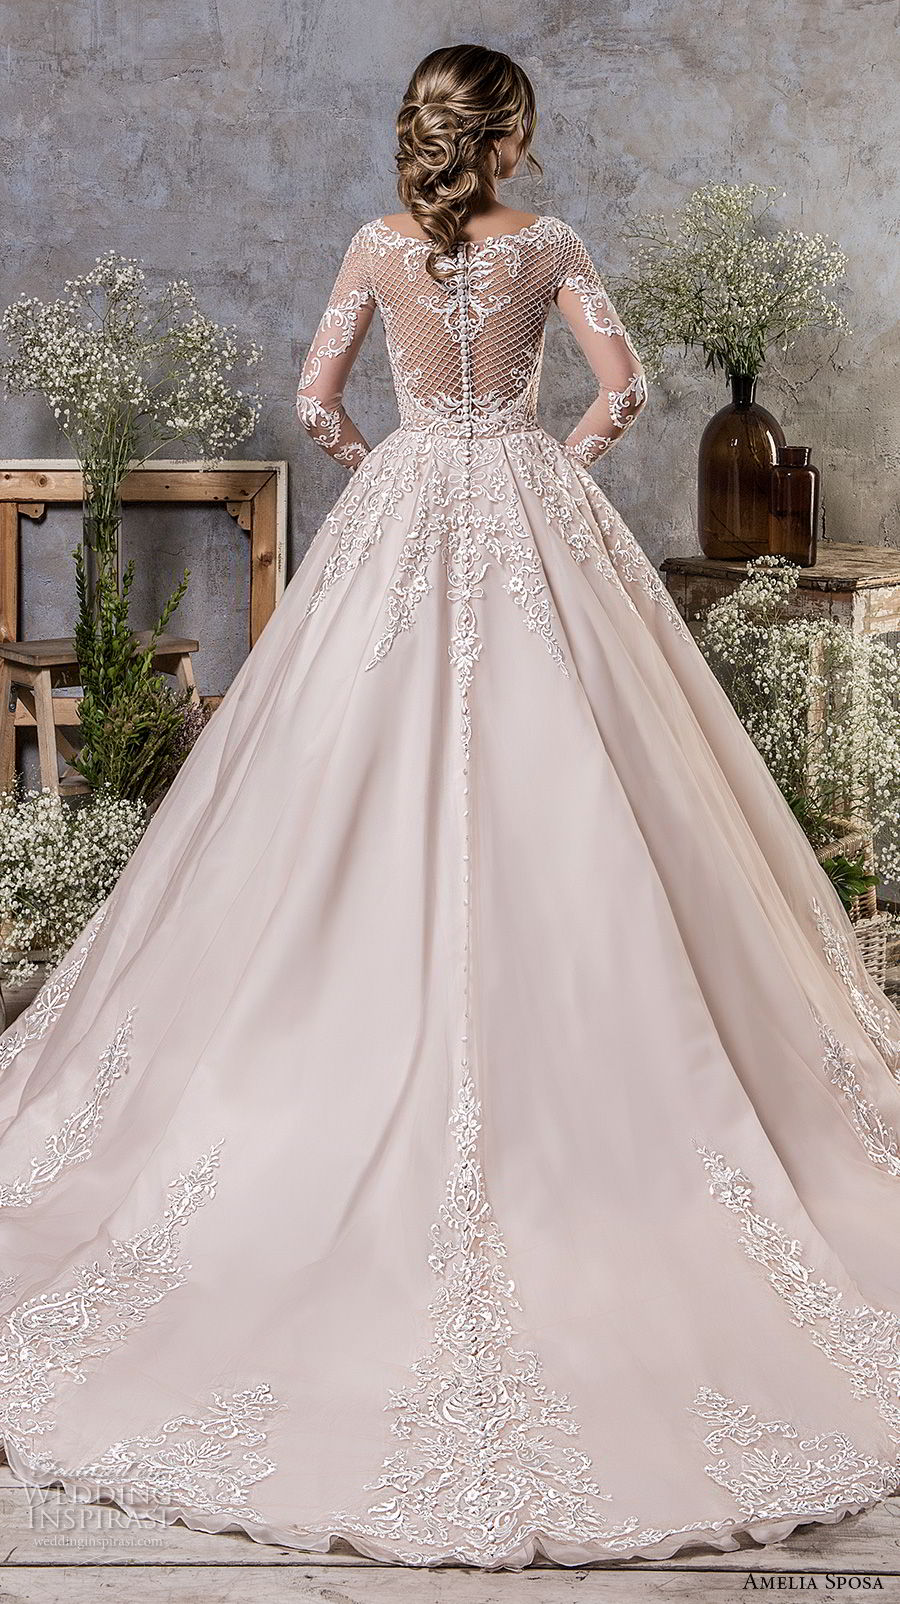 amelia sposa fall 2018 bridal long sleeves illusion bateau sweetheart neckline full embellishment elegant mermaid wedding dress a line overskirt sheer lace back sweep train (19) bv